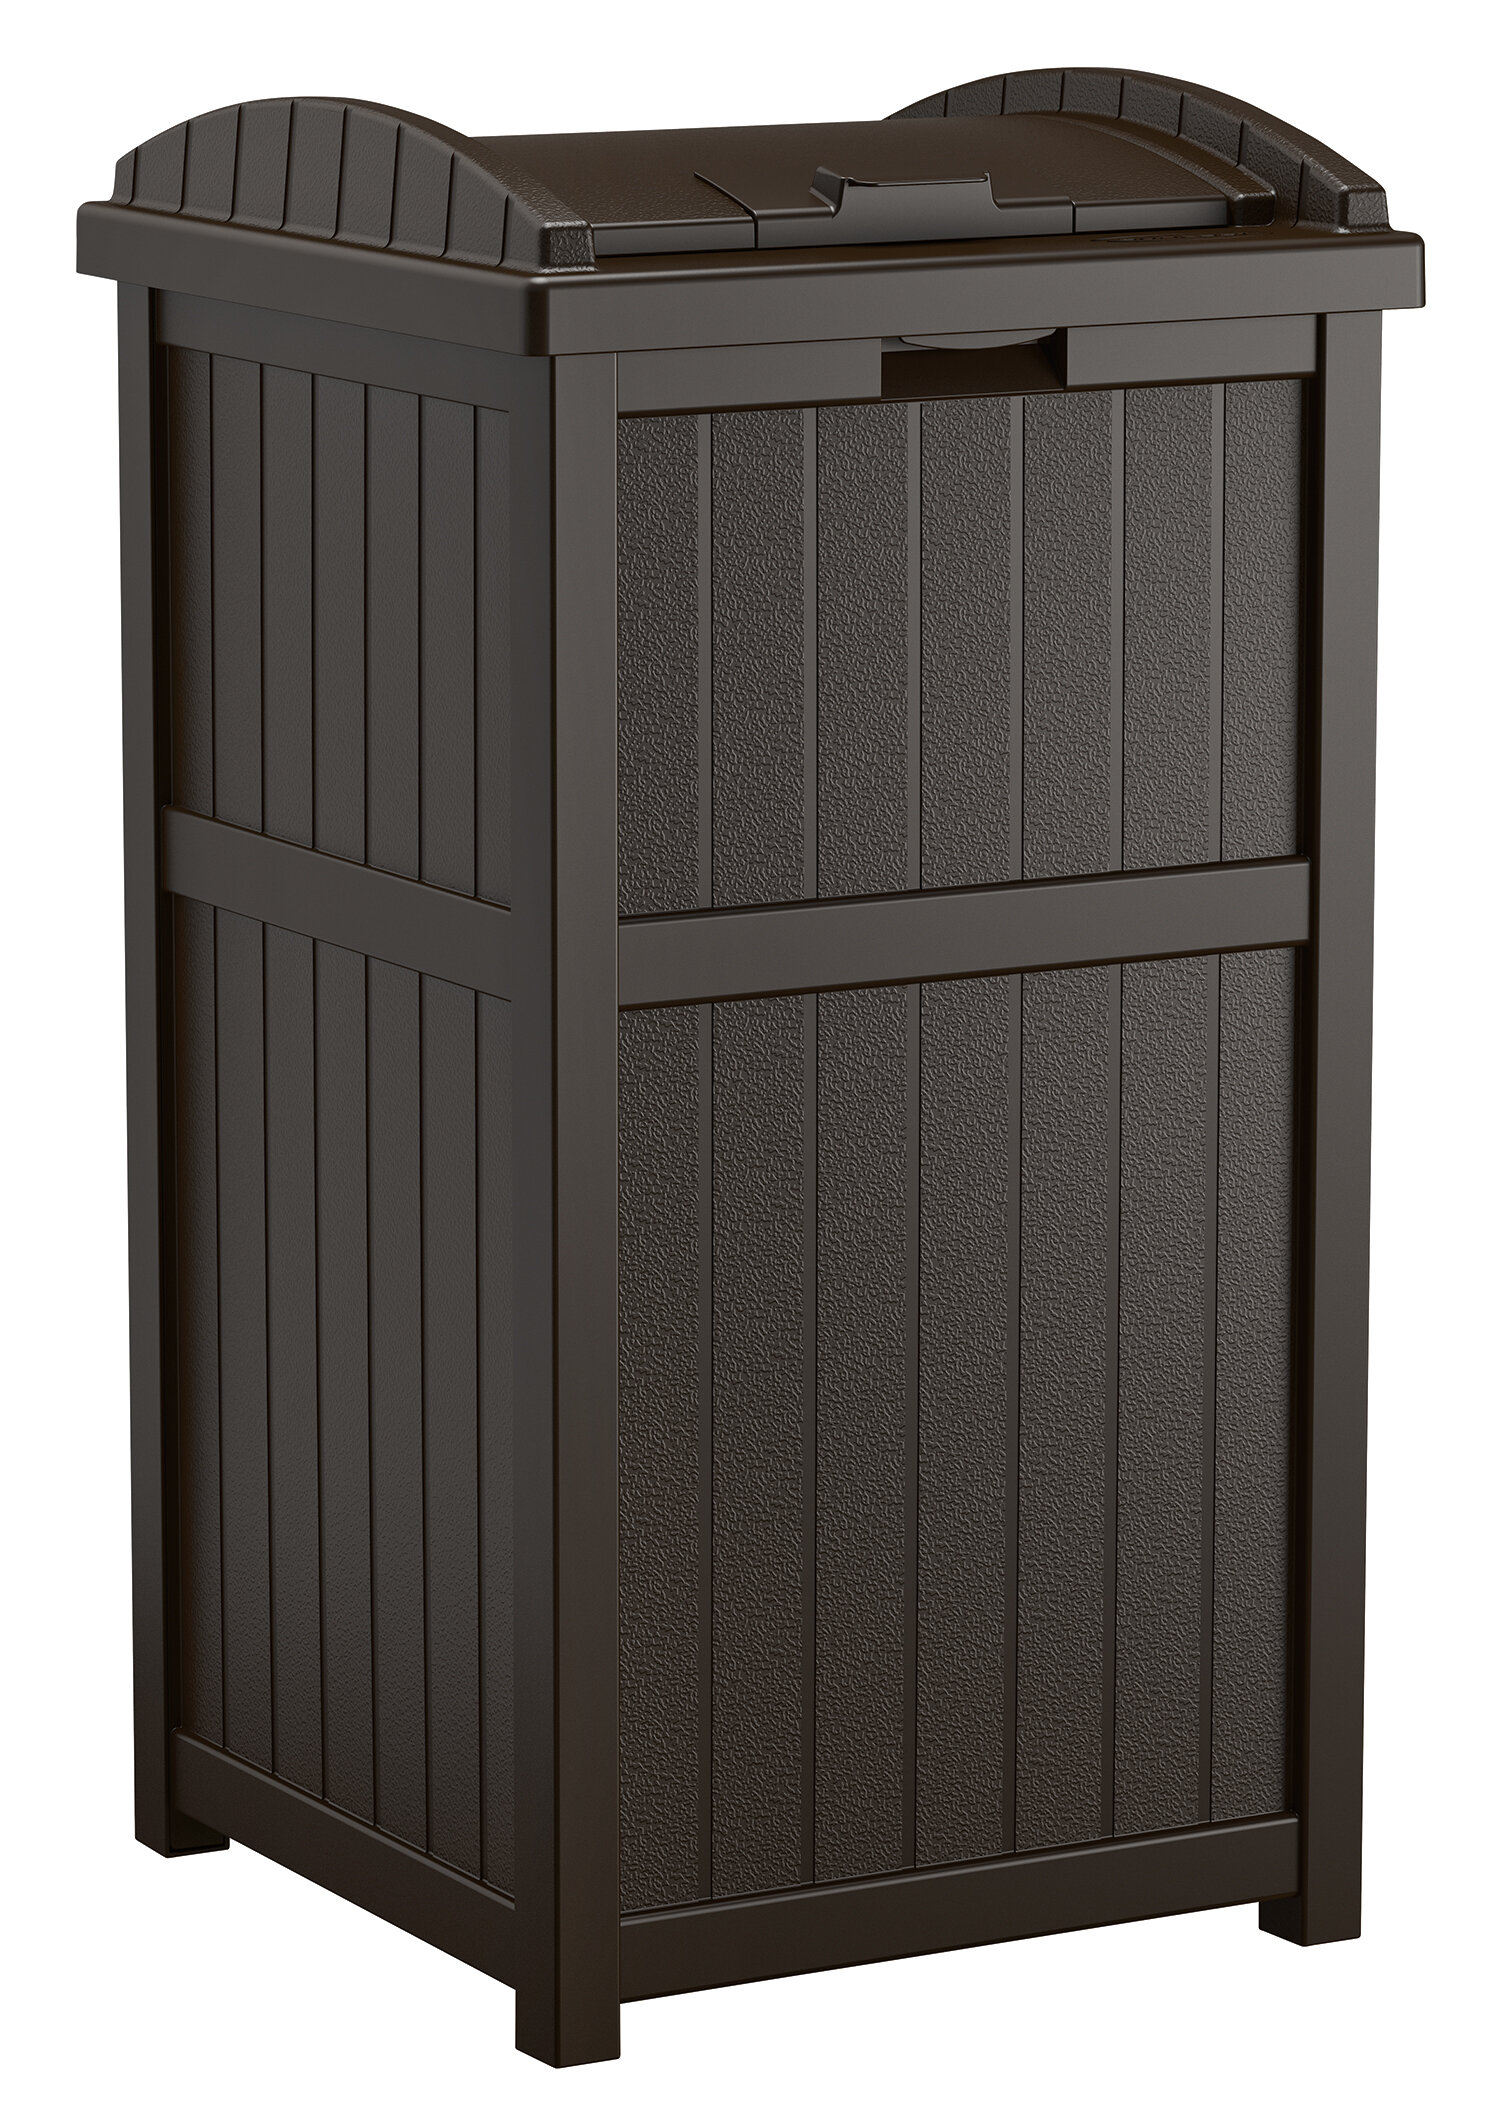 Outdoor Garbage Can Hider